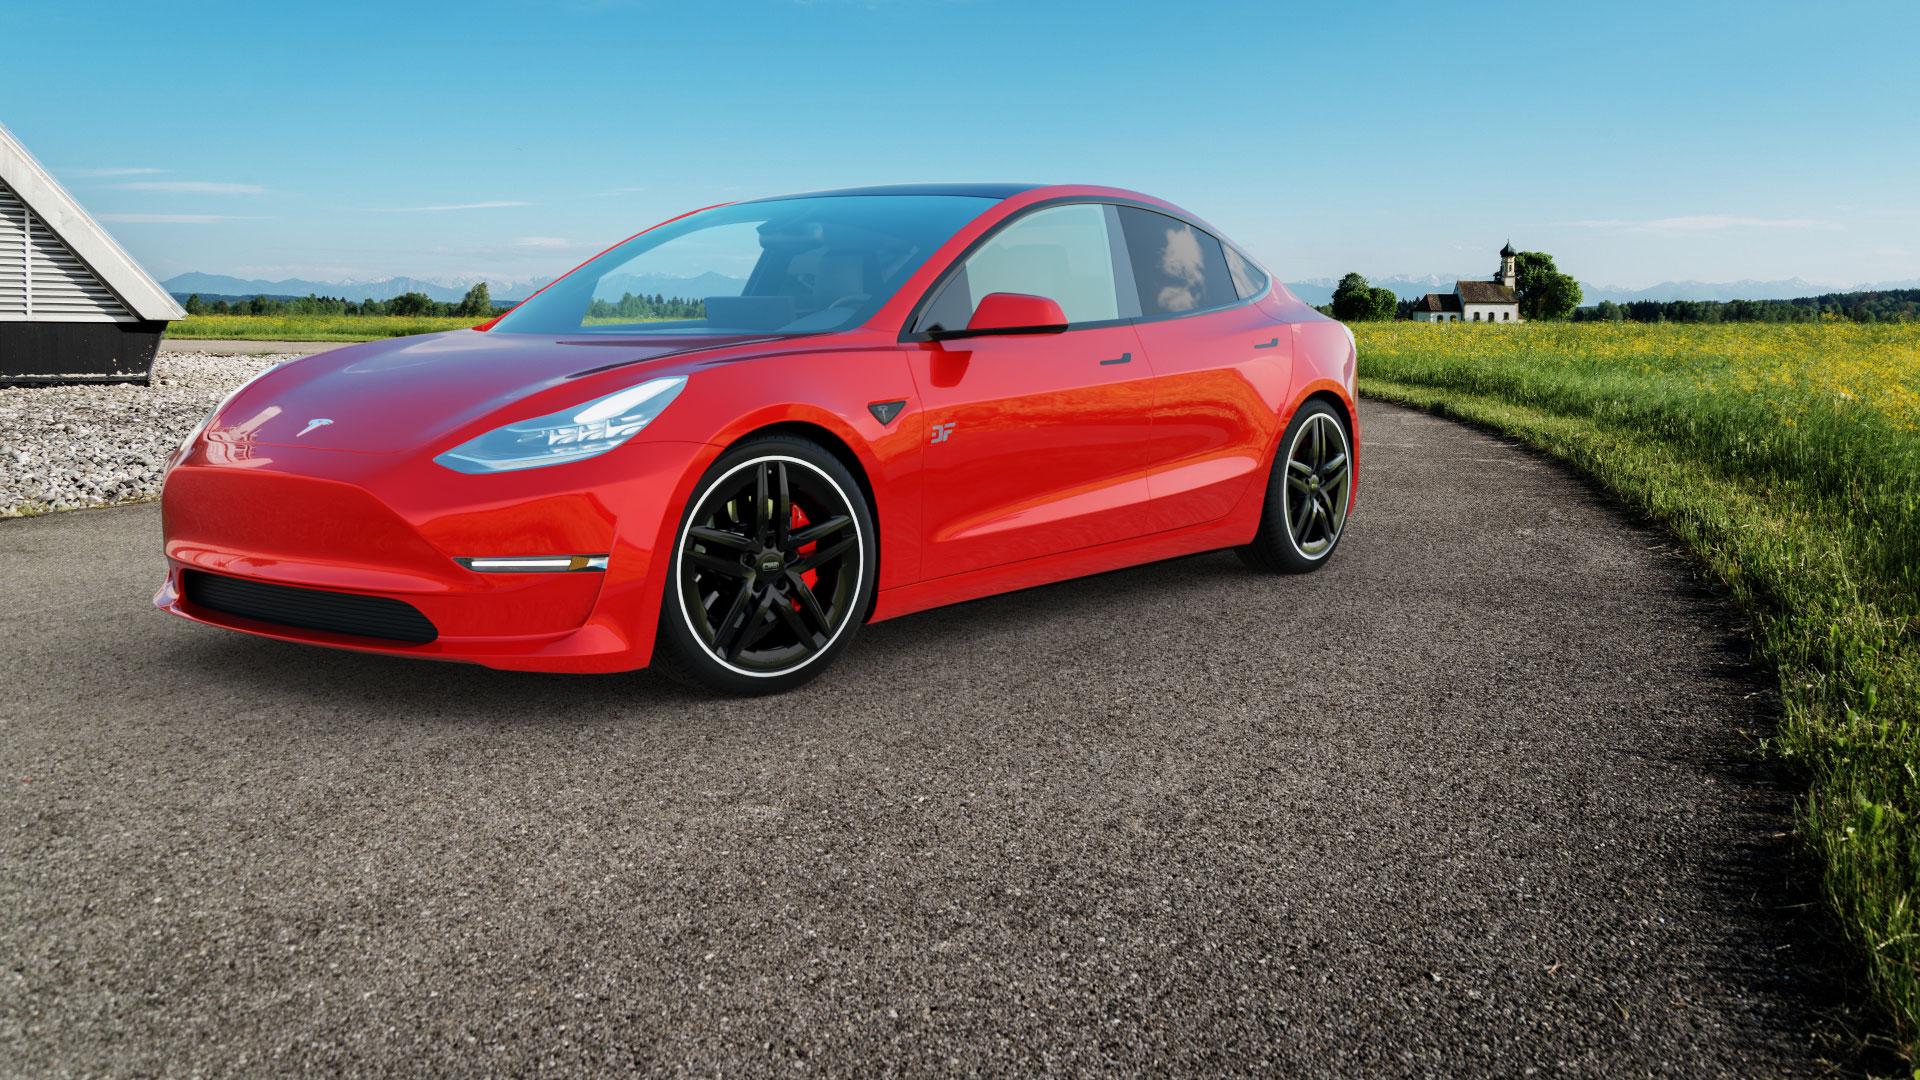 Tesla-Model-3_CMS-C29-Aero-Black-Rim-Polished_Frontansicht-1